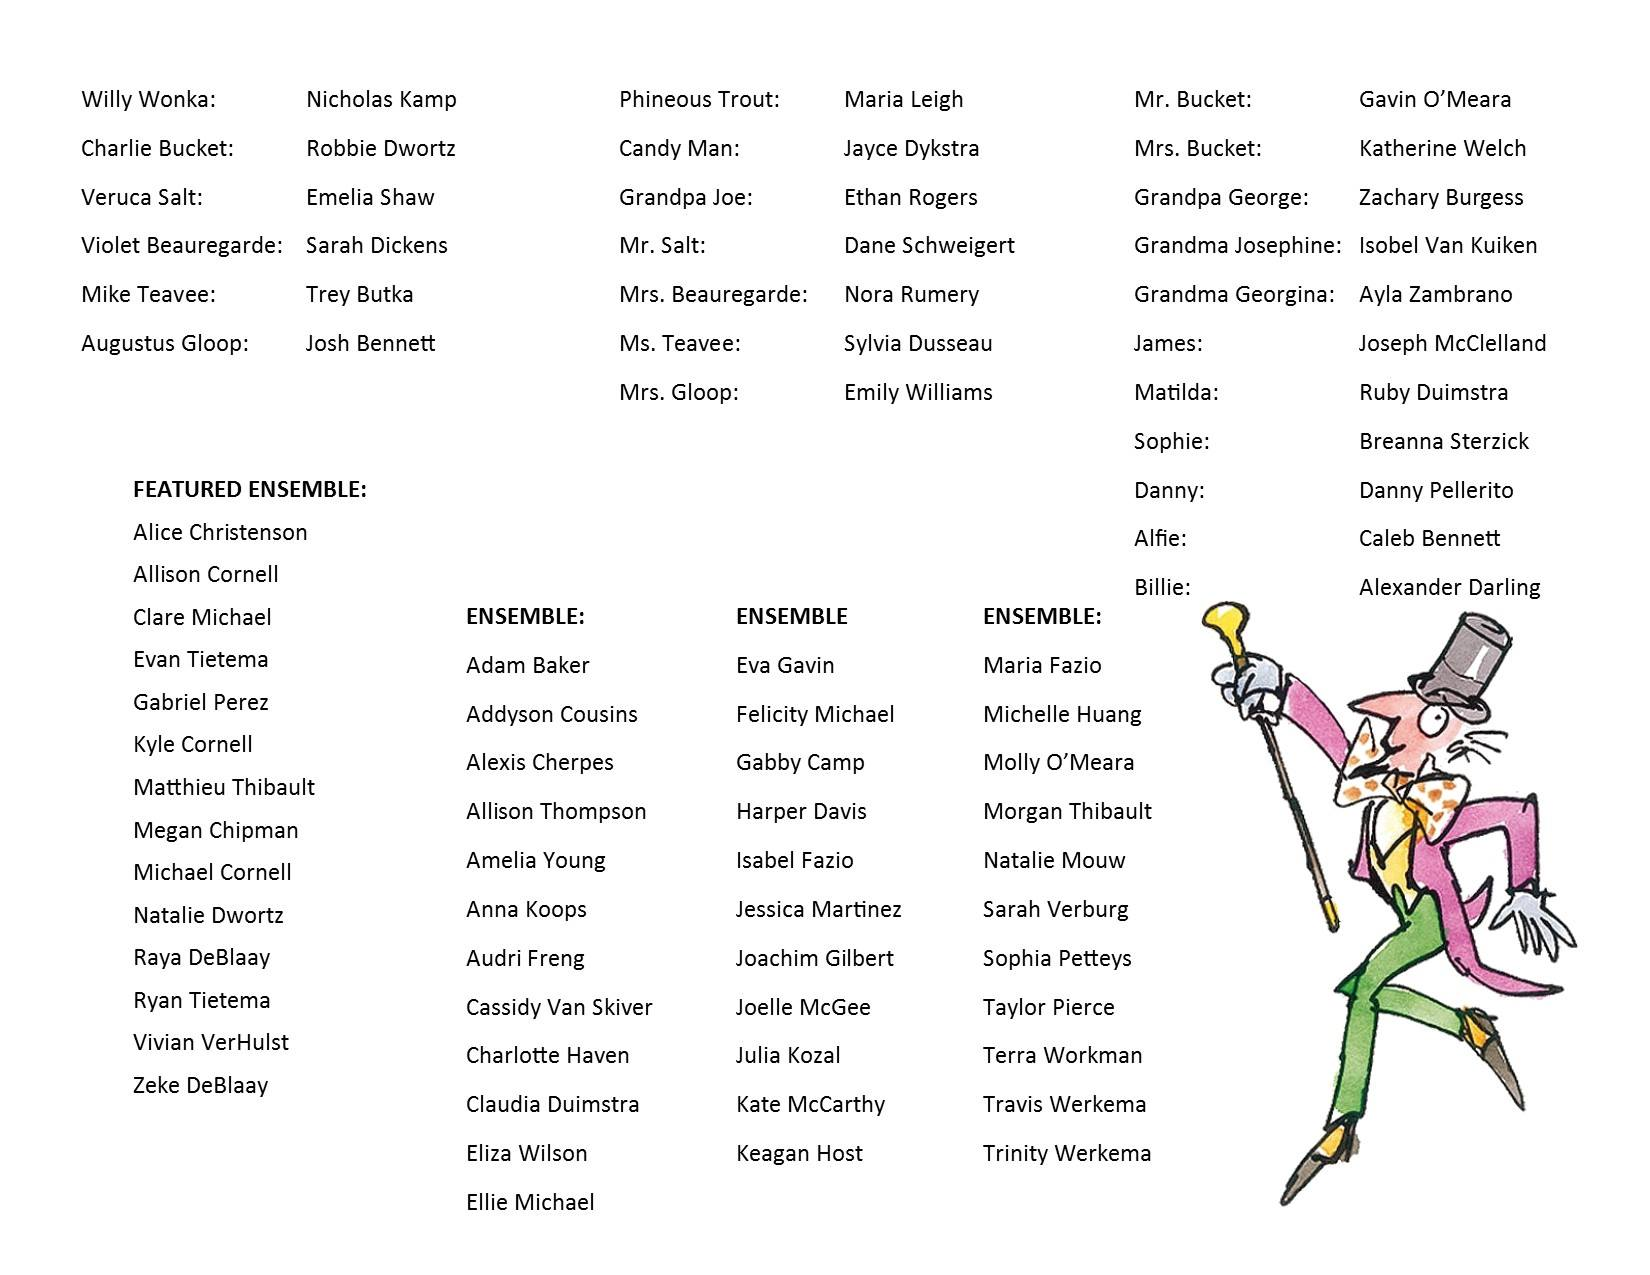 Click image to view the Willy Wonka cast list.  Congratulations to everyone!